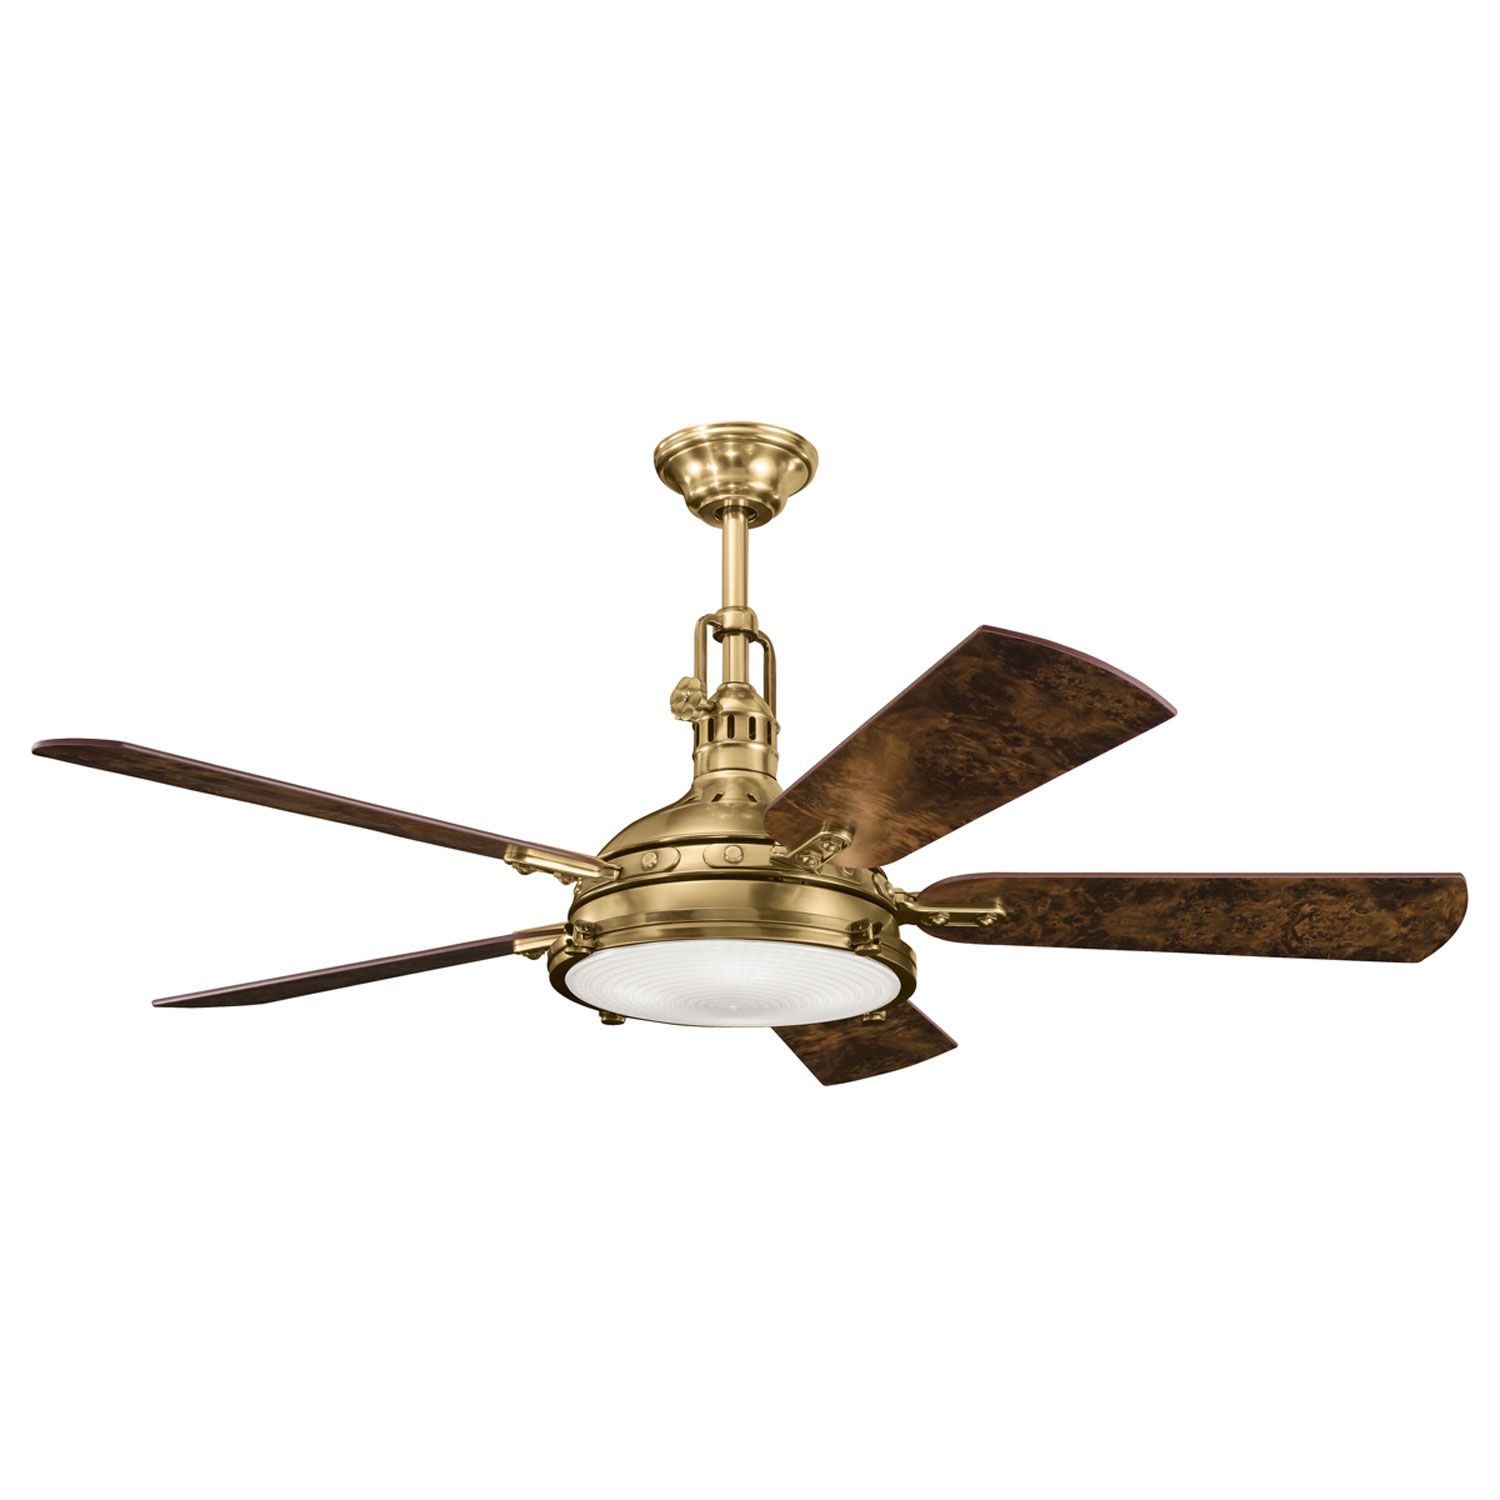 Endacott Lighting Brass Ceiling Fan Antique Ceiling Fans